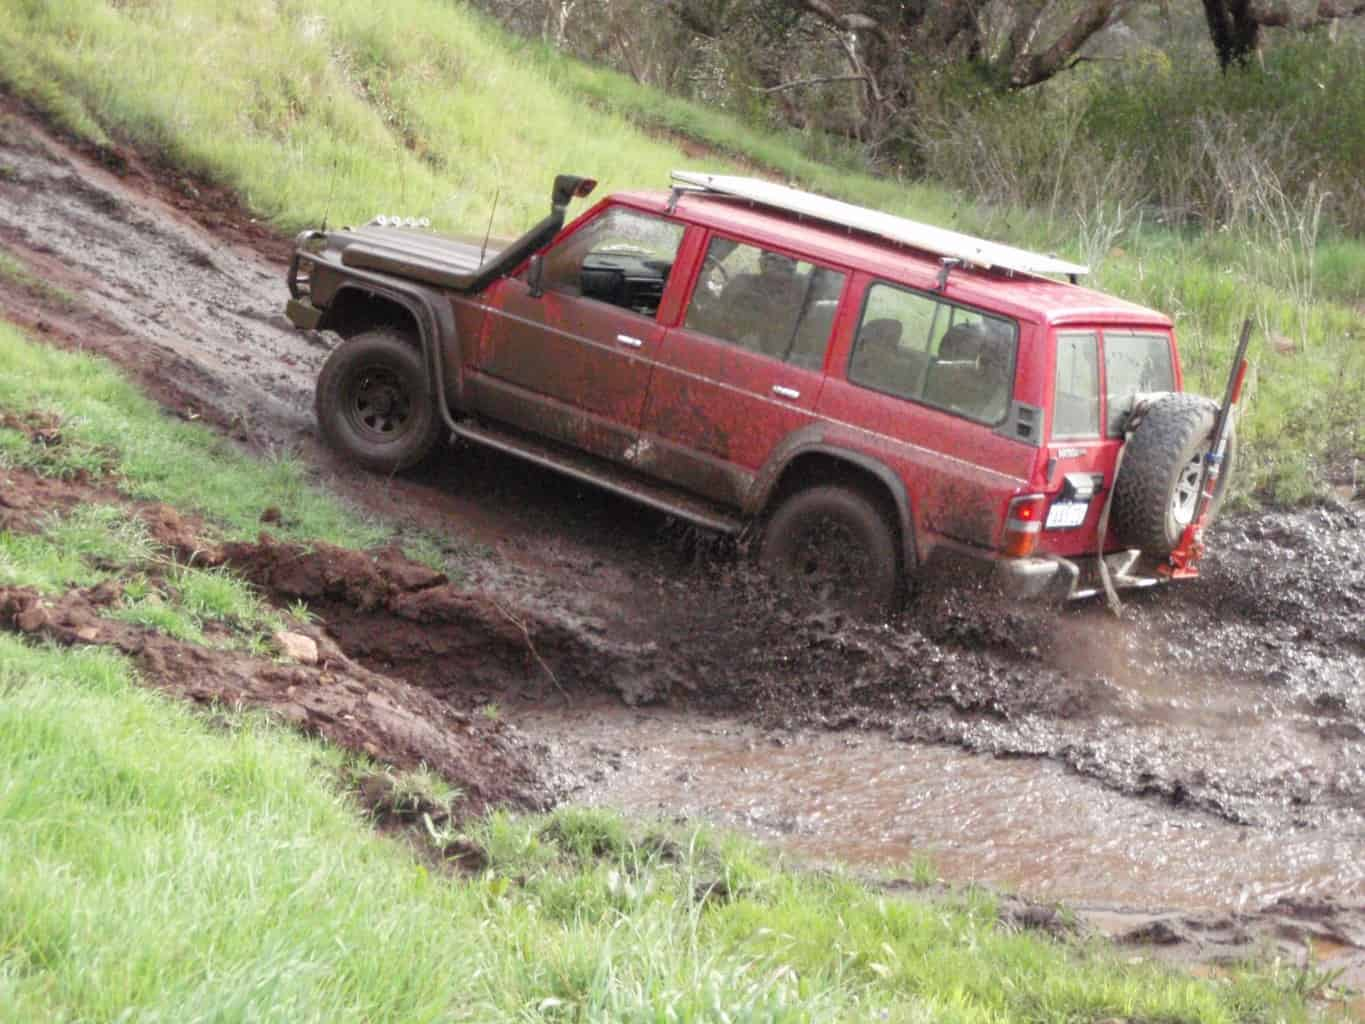 Perth 4WD Tracks